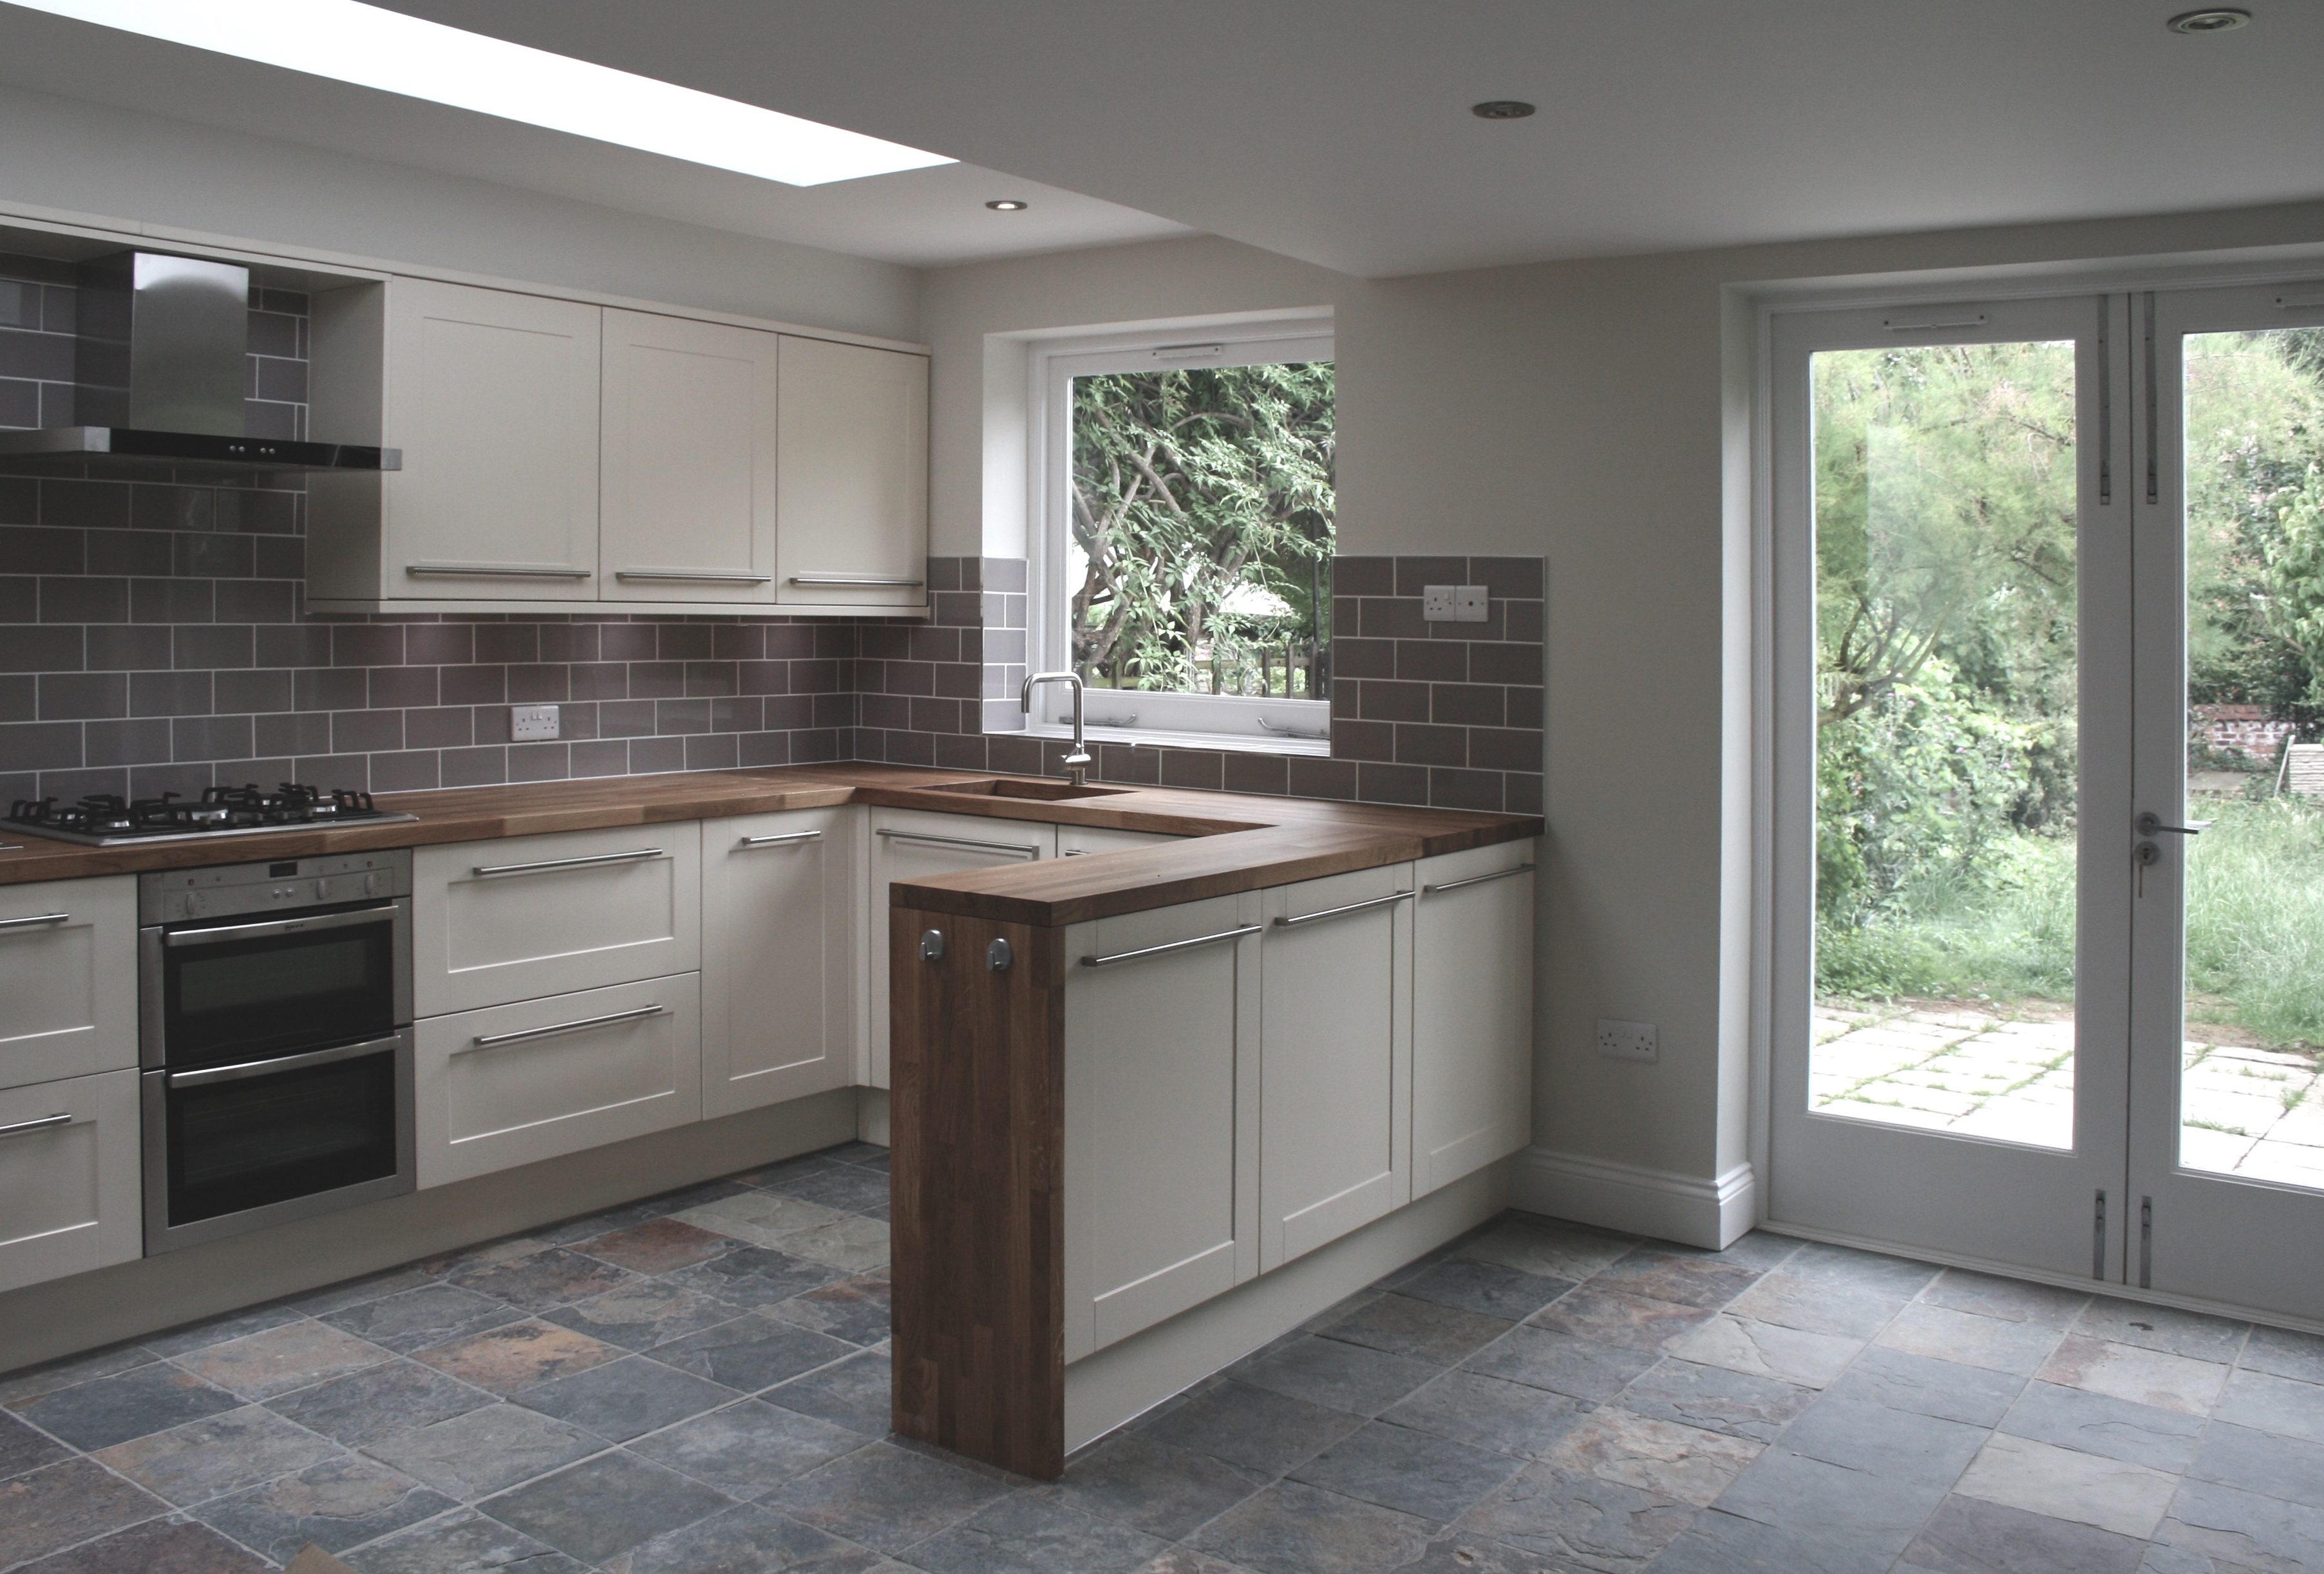 N4, London | New kitchen extension